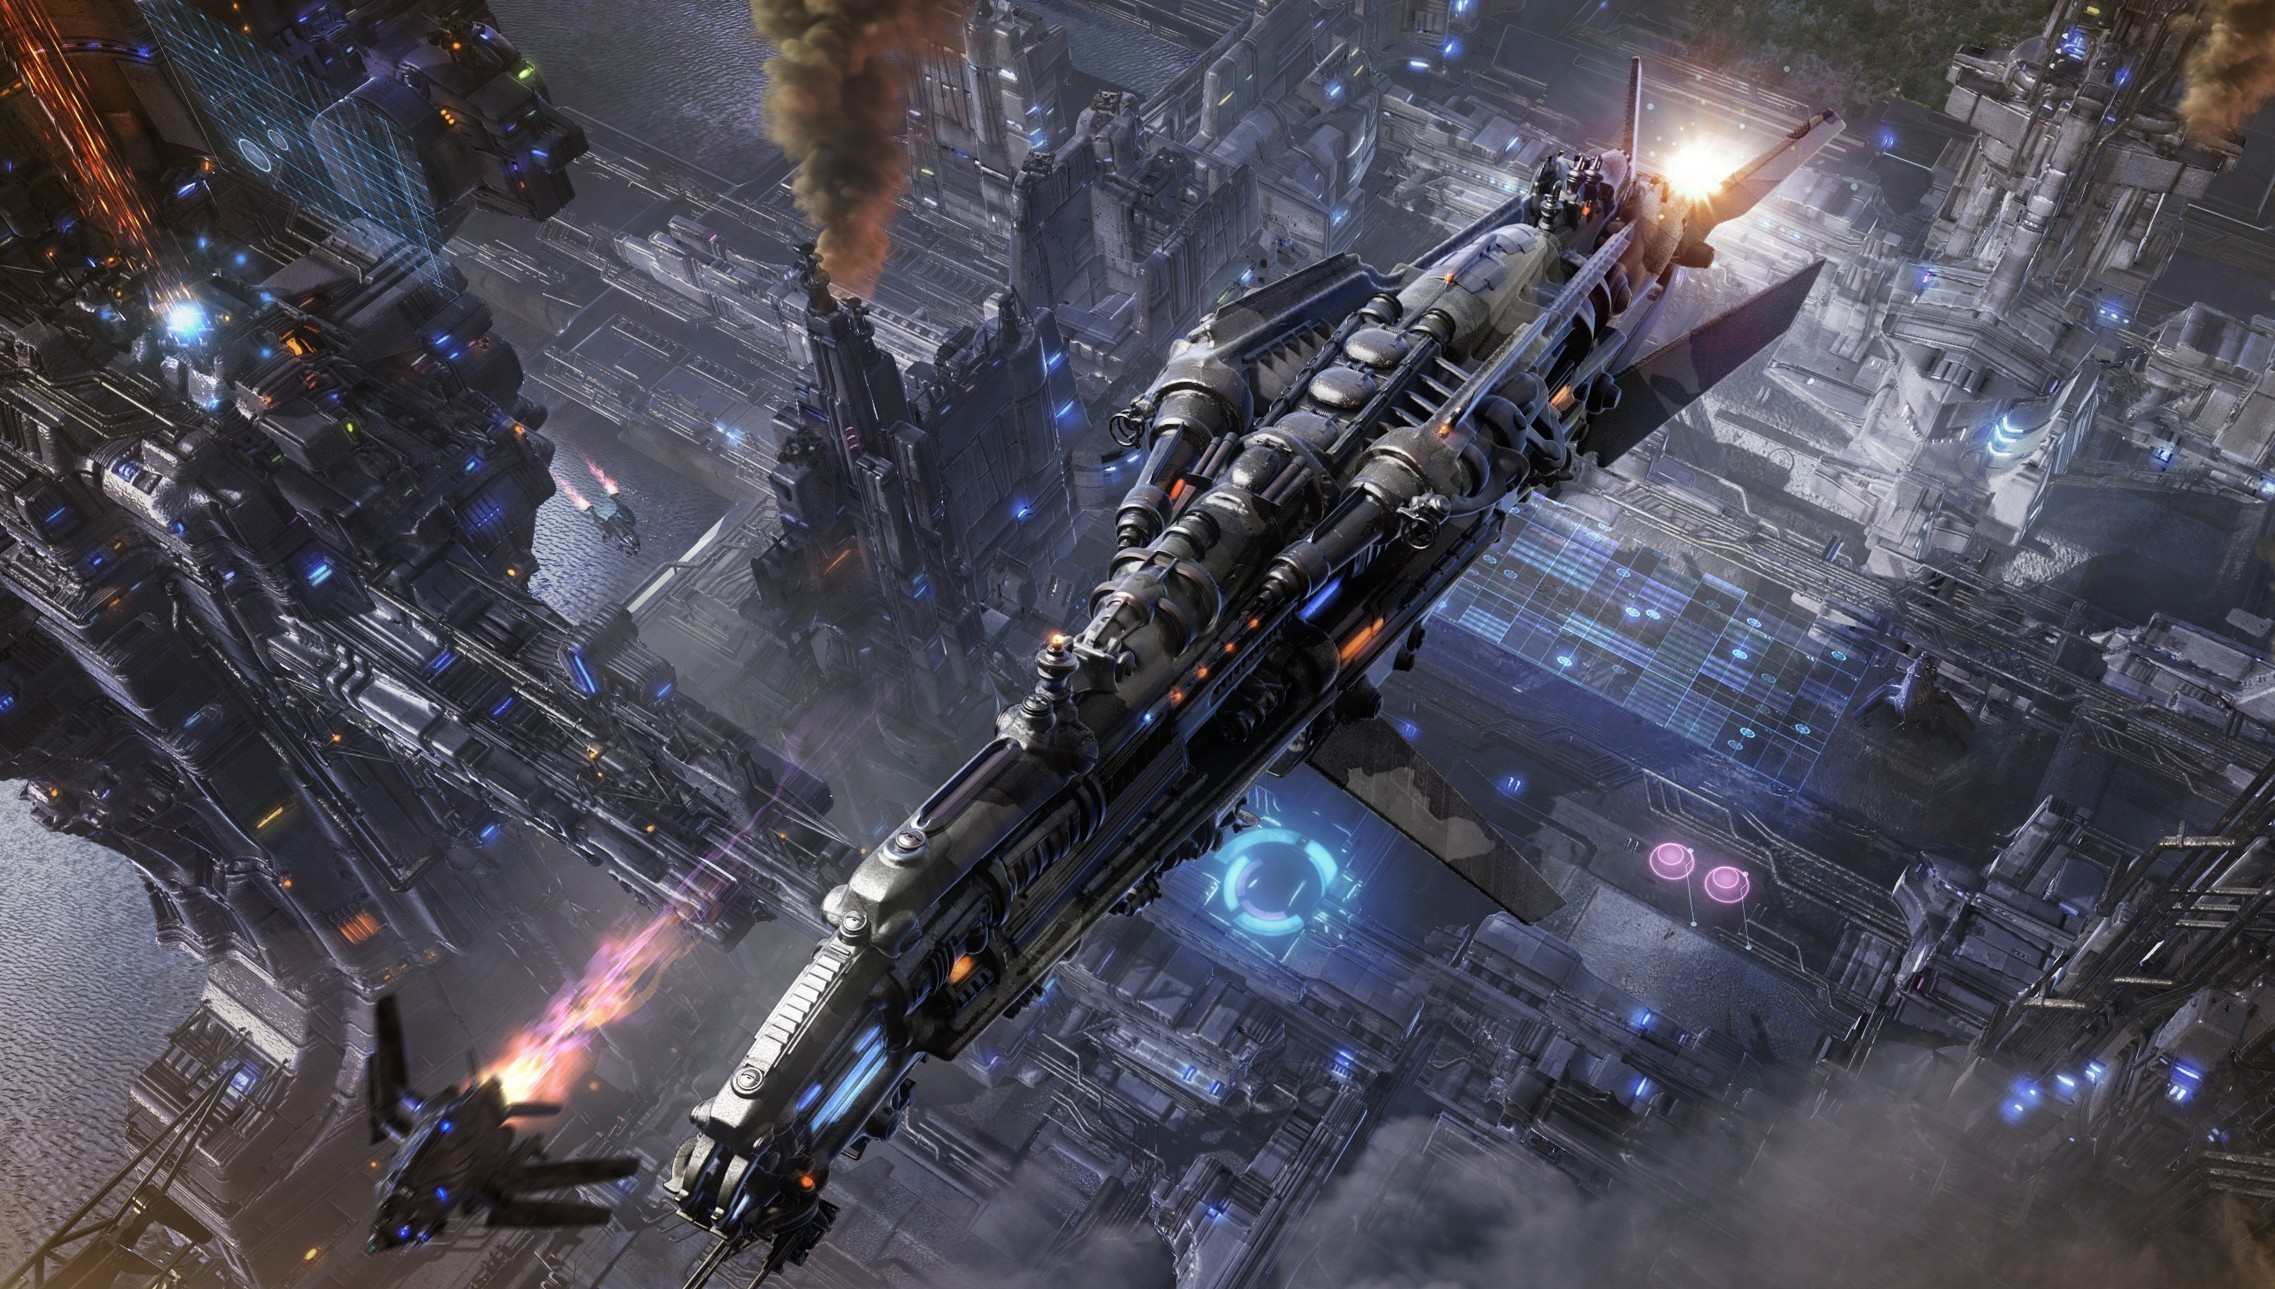 Spaceship full hd wallpaper and background image for Sci fi background